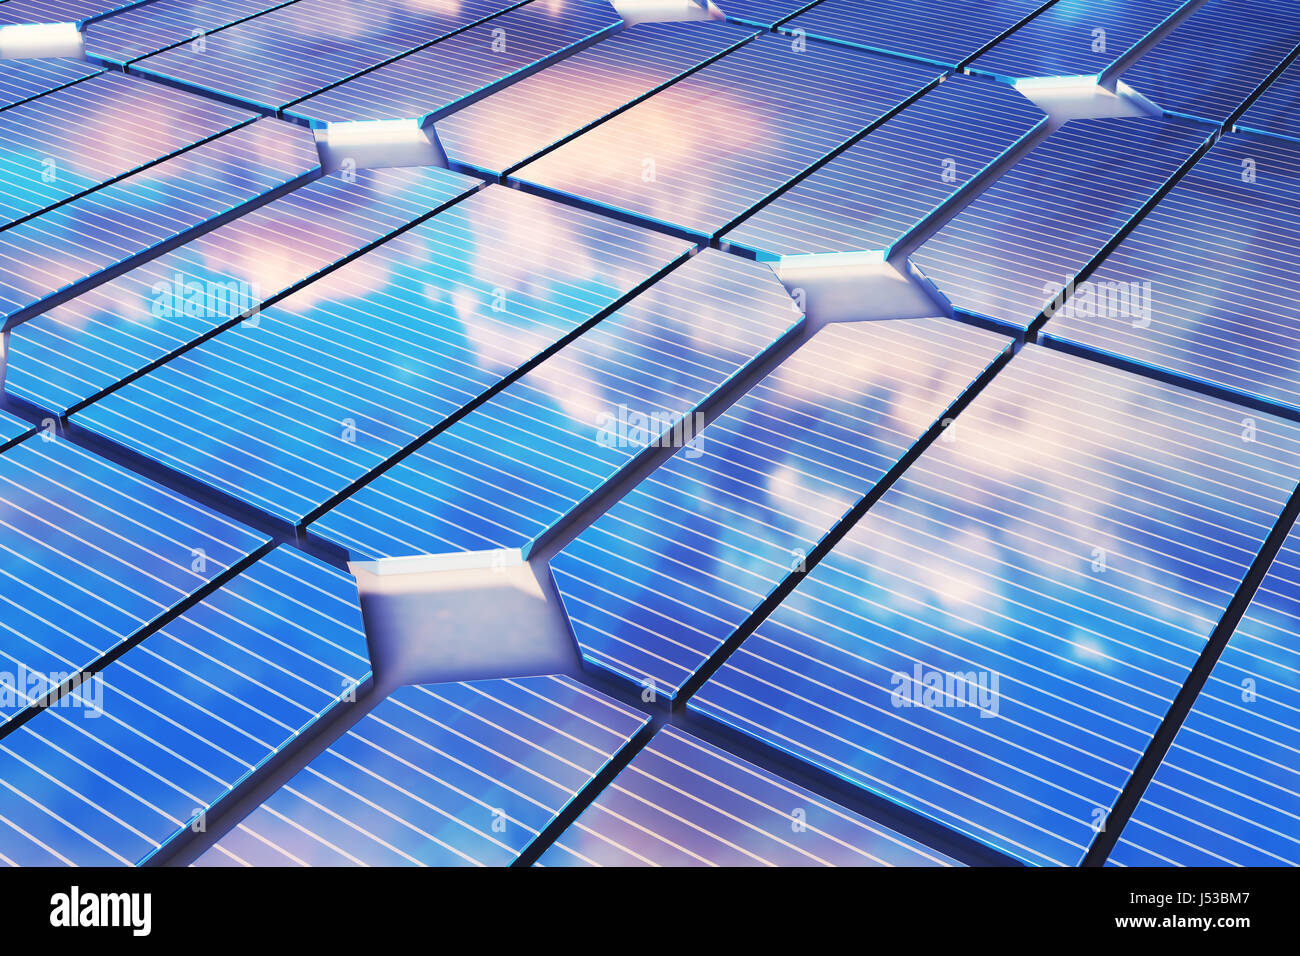 3D illustration reflection of the clouds on the photovoltaic cells. Blue solar panels on grass. Concept alternative - Stock Image